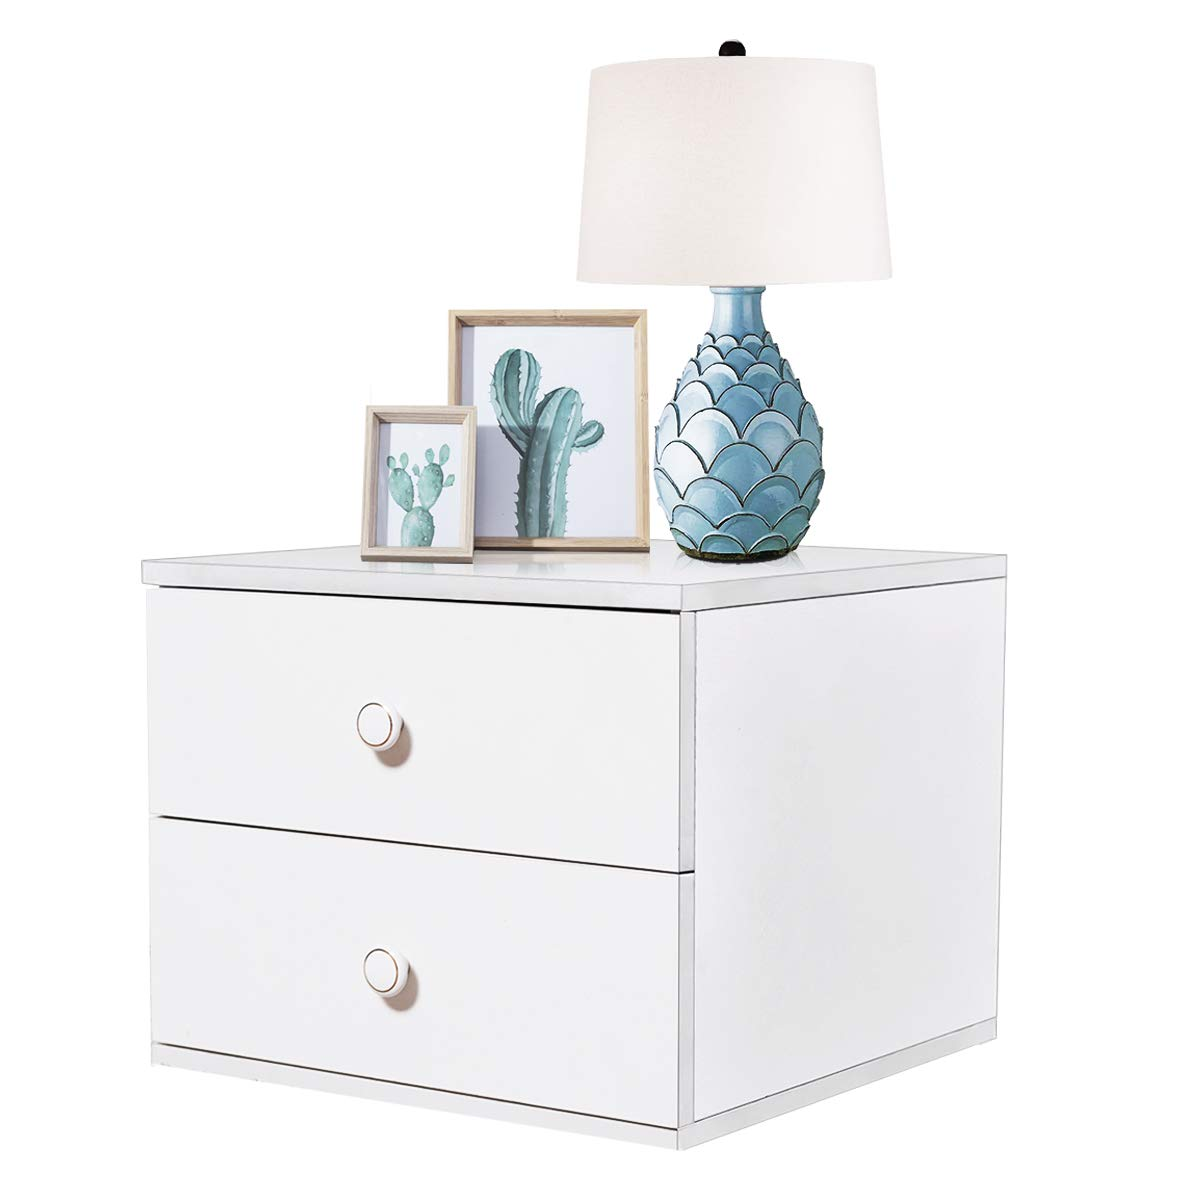 Tangkula Night Stand Contemporary Simple Design Wood Multi-Purpose Home Furniture Side End Table Storage Cabinet with 2 Drawers, White (1) by Tangkula